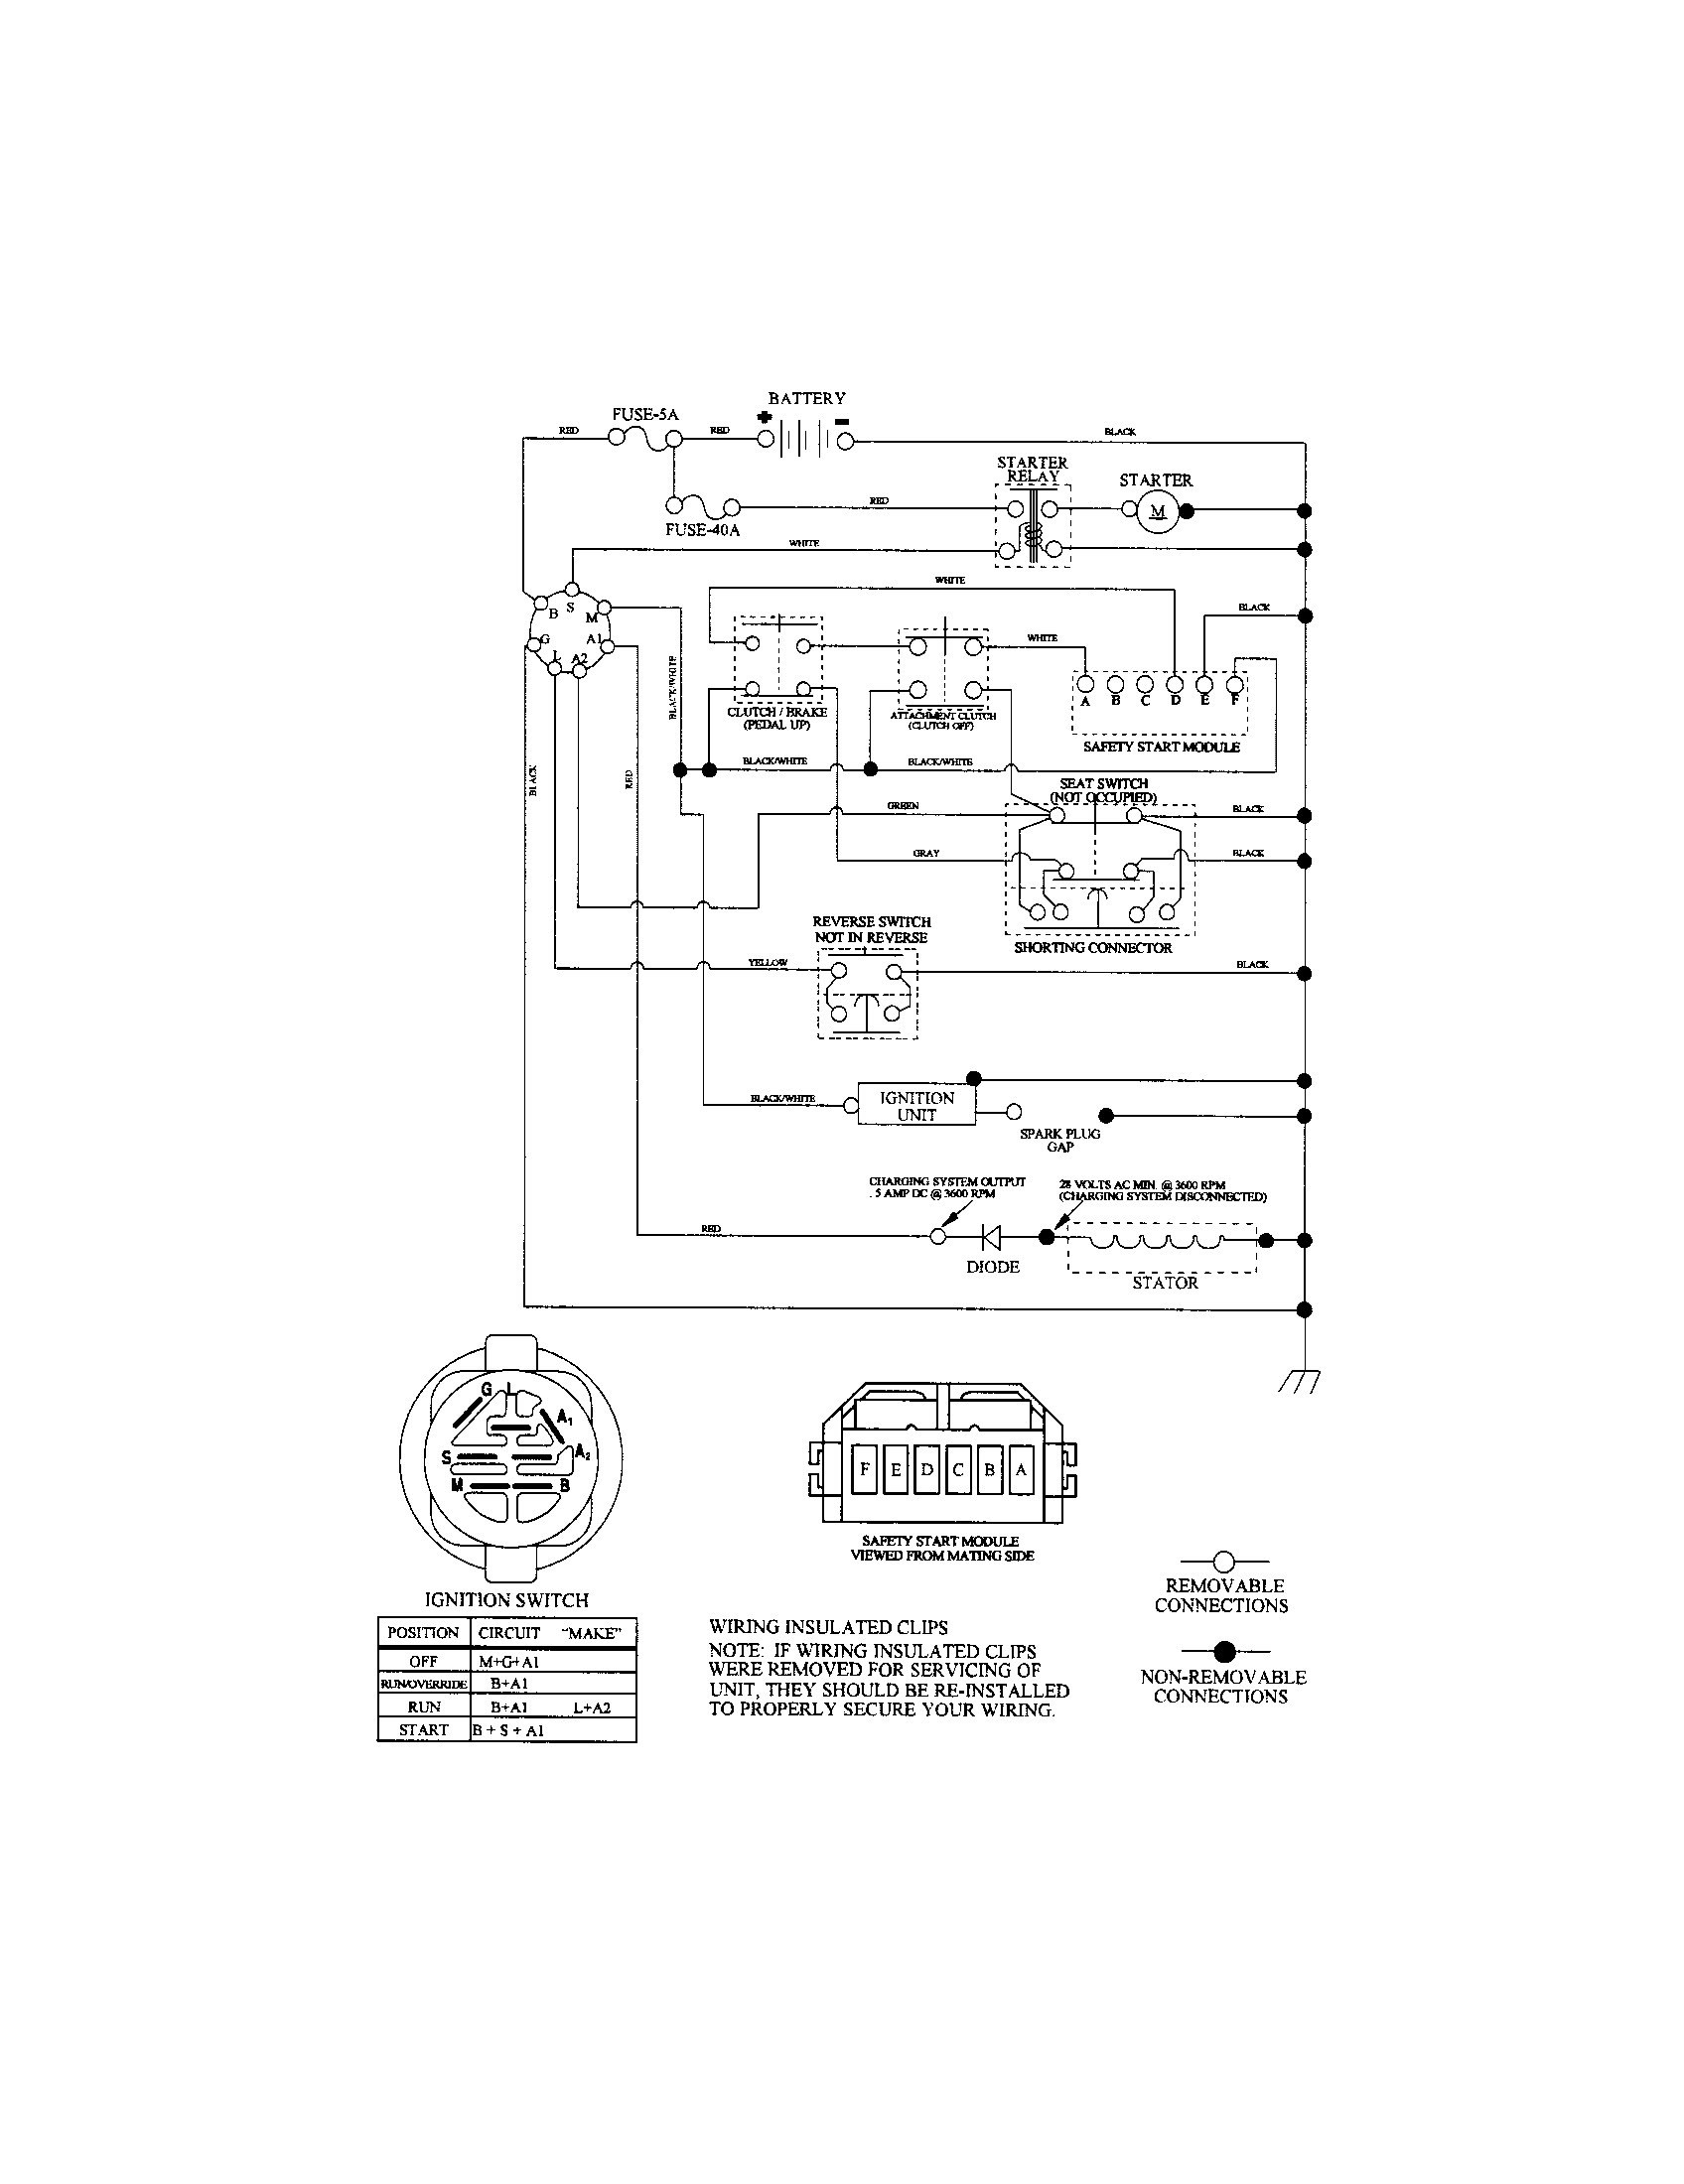 [DIAGRAM_1JK]  A0662 Husqvarna Lawn Tractor Wiring Diagram   Wiring Resources   Lawn Tractors Wiring Diagram For Electrolux      Wiring Resources